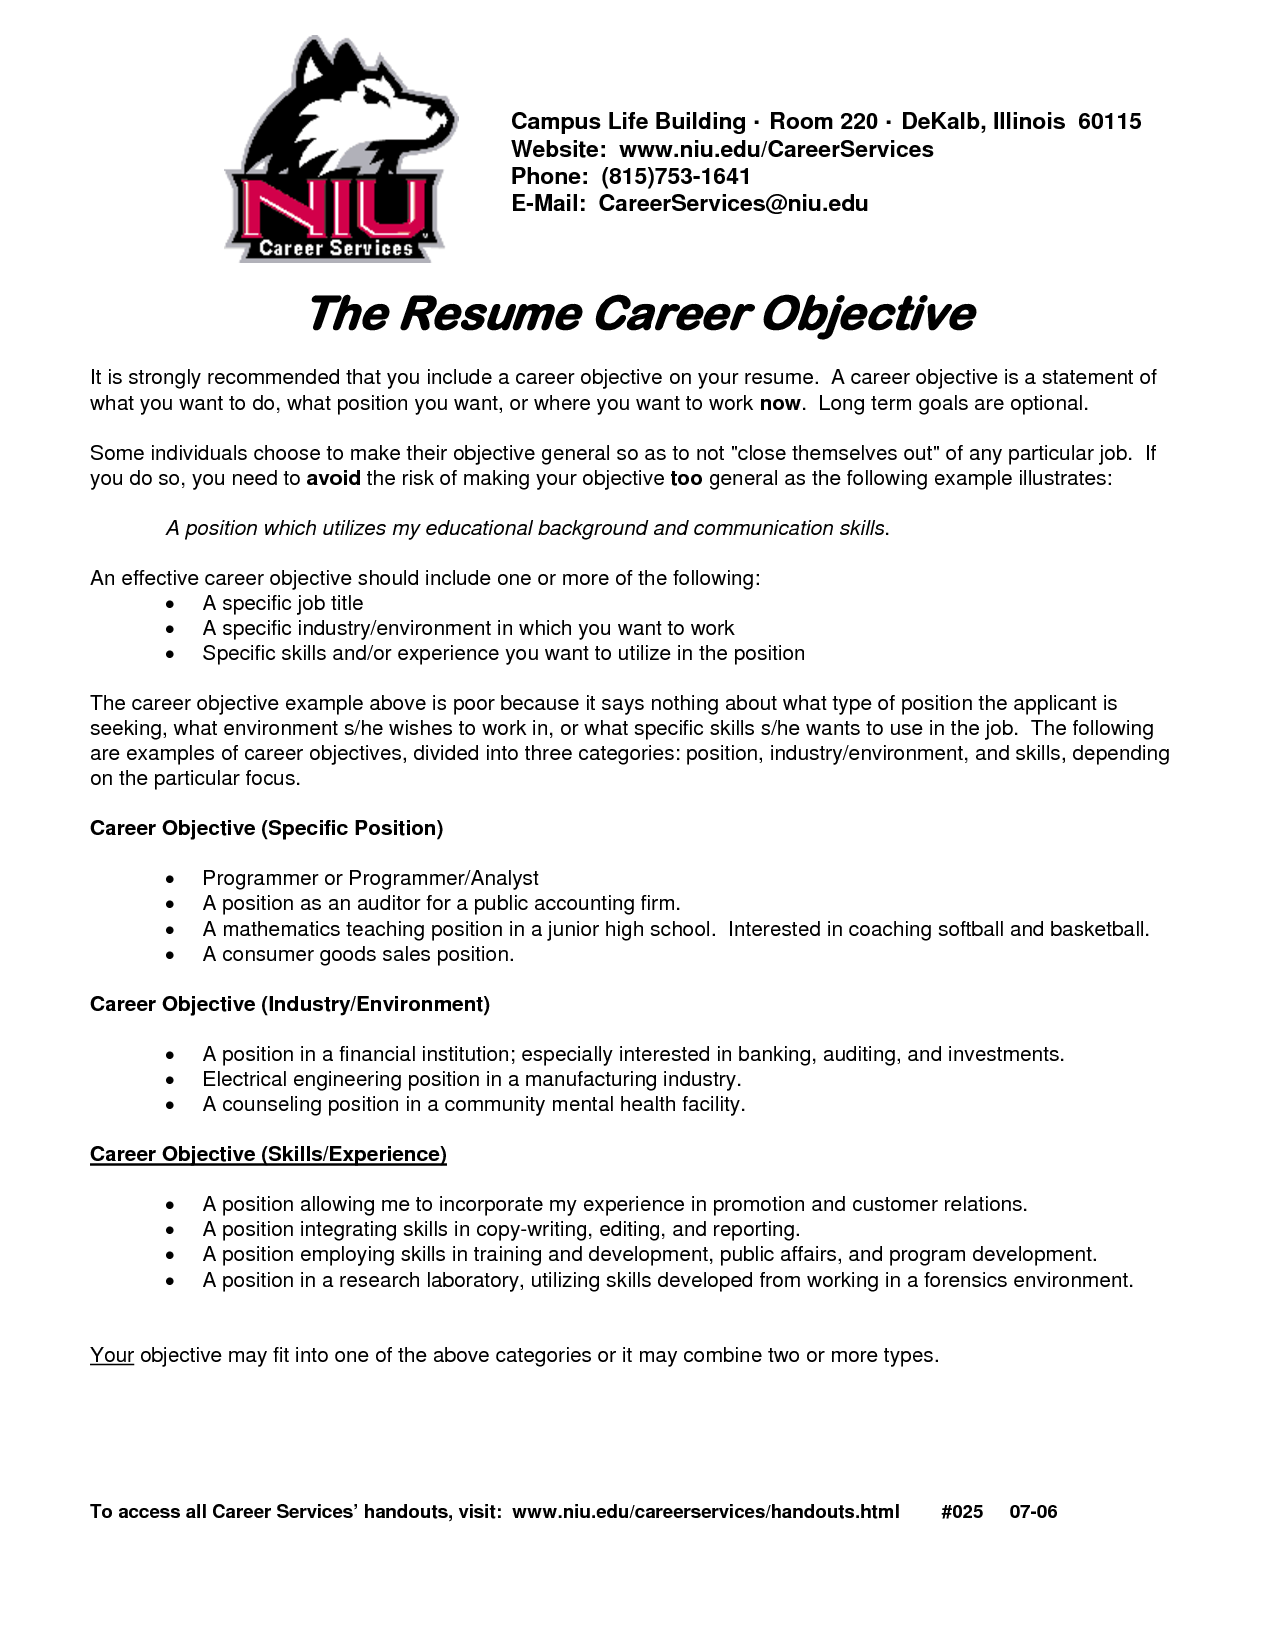 career objective resume examples free download - Career Objective Statements For Resume